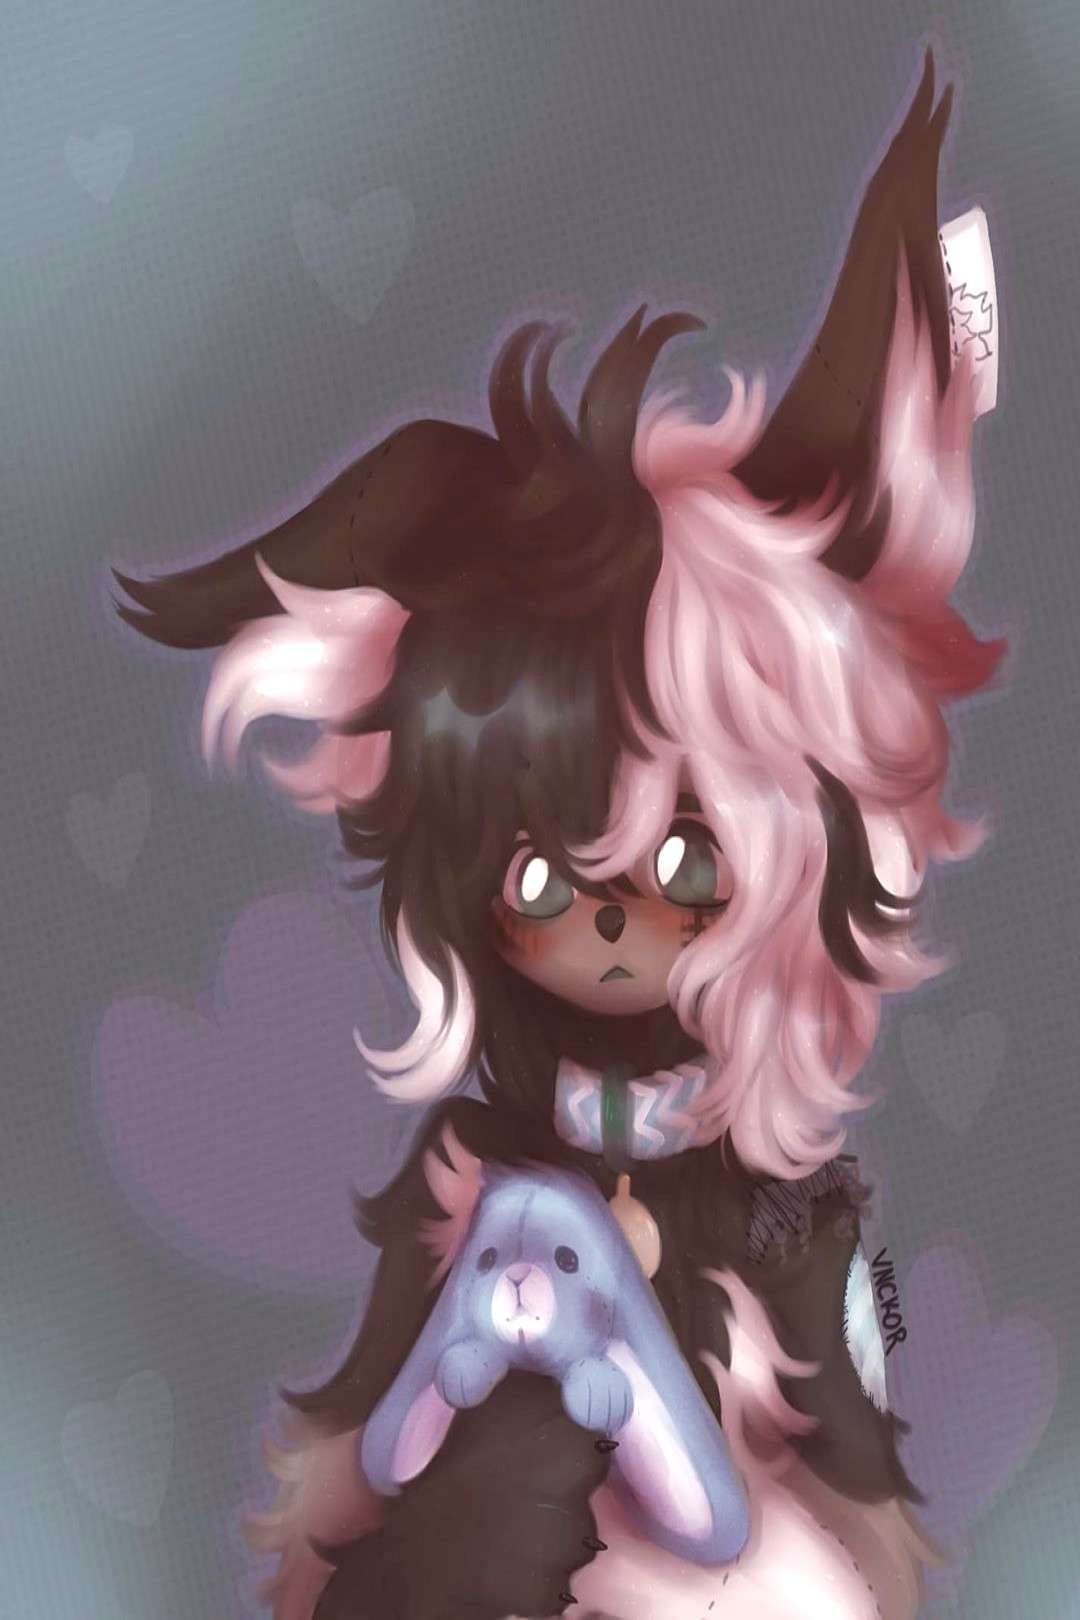 #digitalpainting #commissions #february #waaaaaa #spookie #painti #242020 #photo #ocs #qwq #art #for #oc #by #dm Waaaaaa art of my spookie!! QwQ #oc #ocs #digitalpainting #paintiYou can find Dog art and mo...